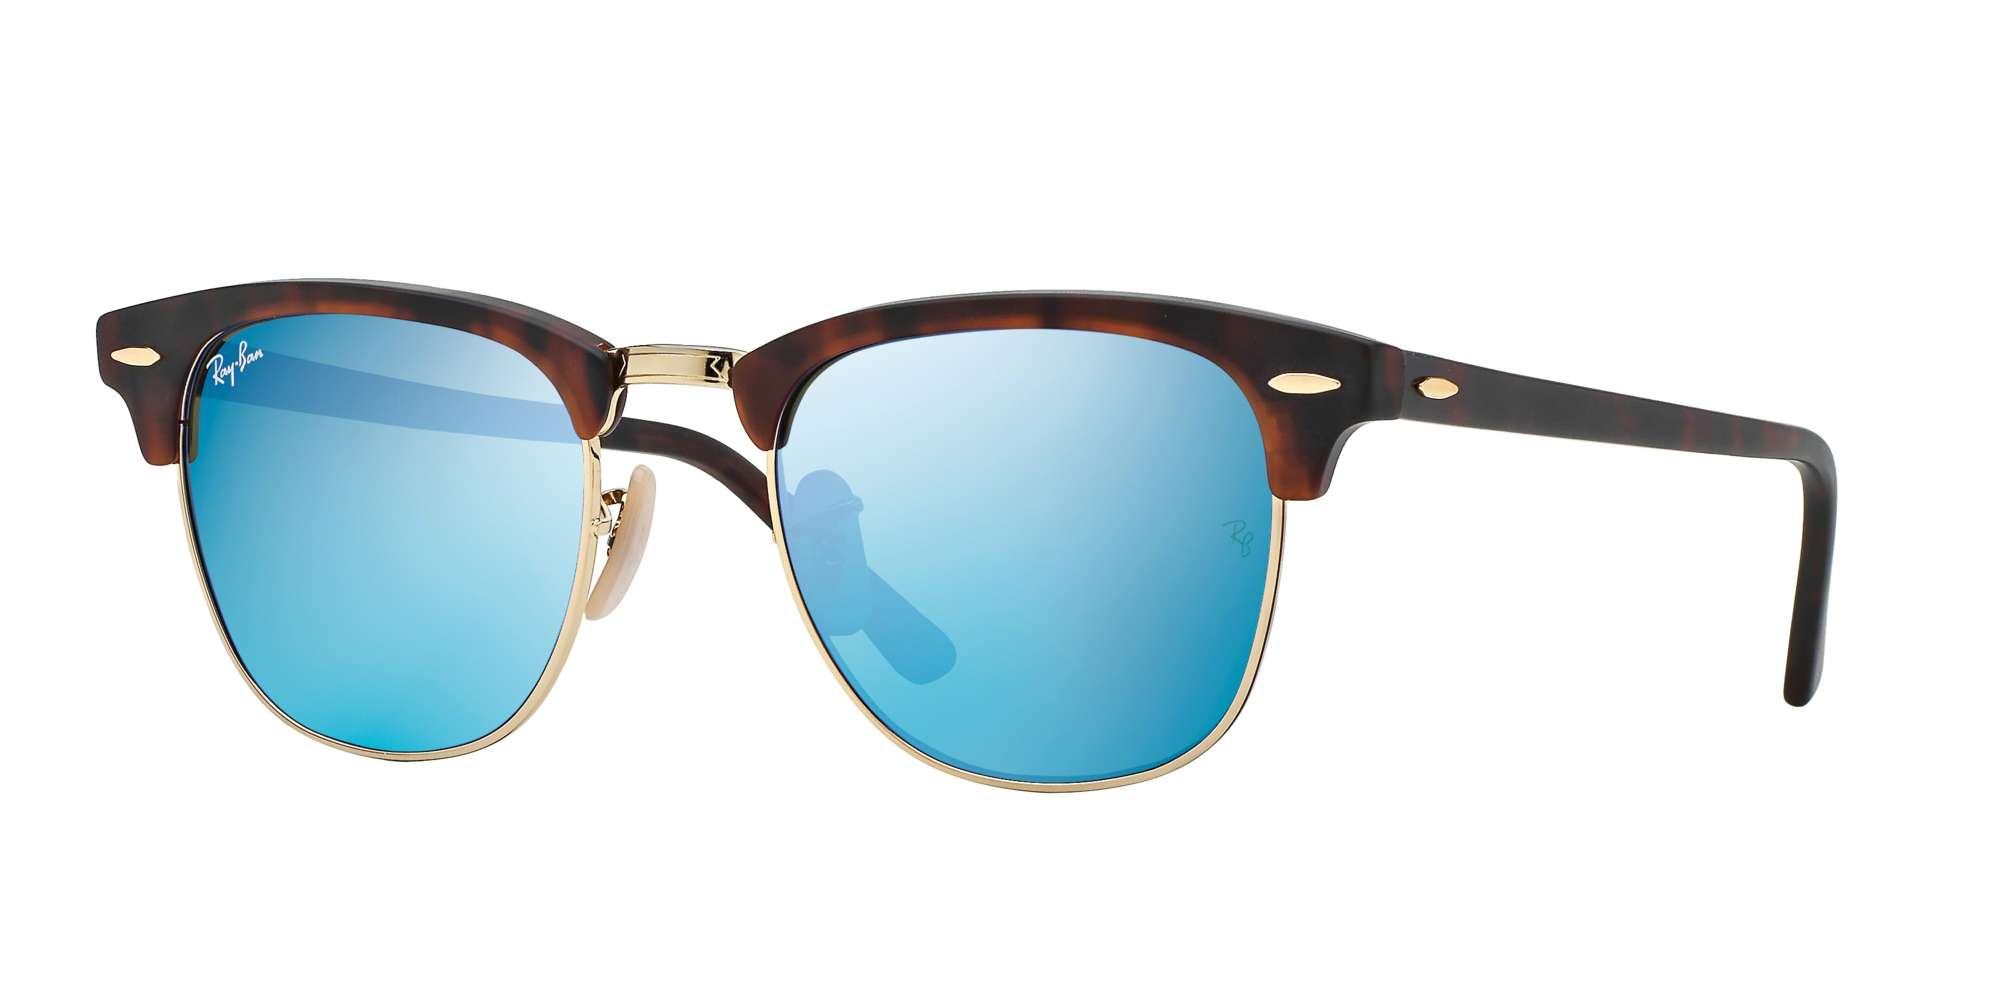 SAND HAVANA/GOLD / GREY MIRROR BLUE lenses